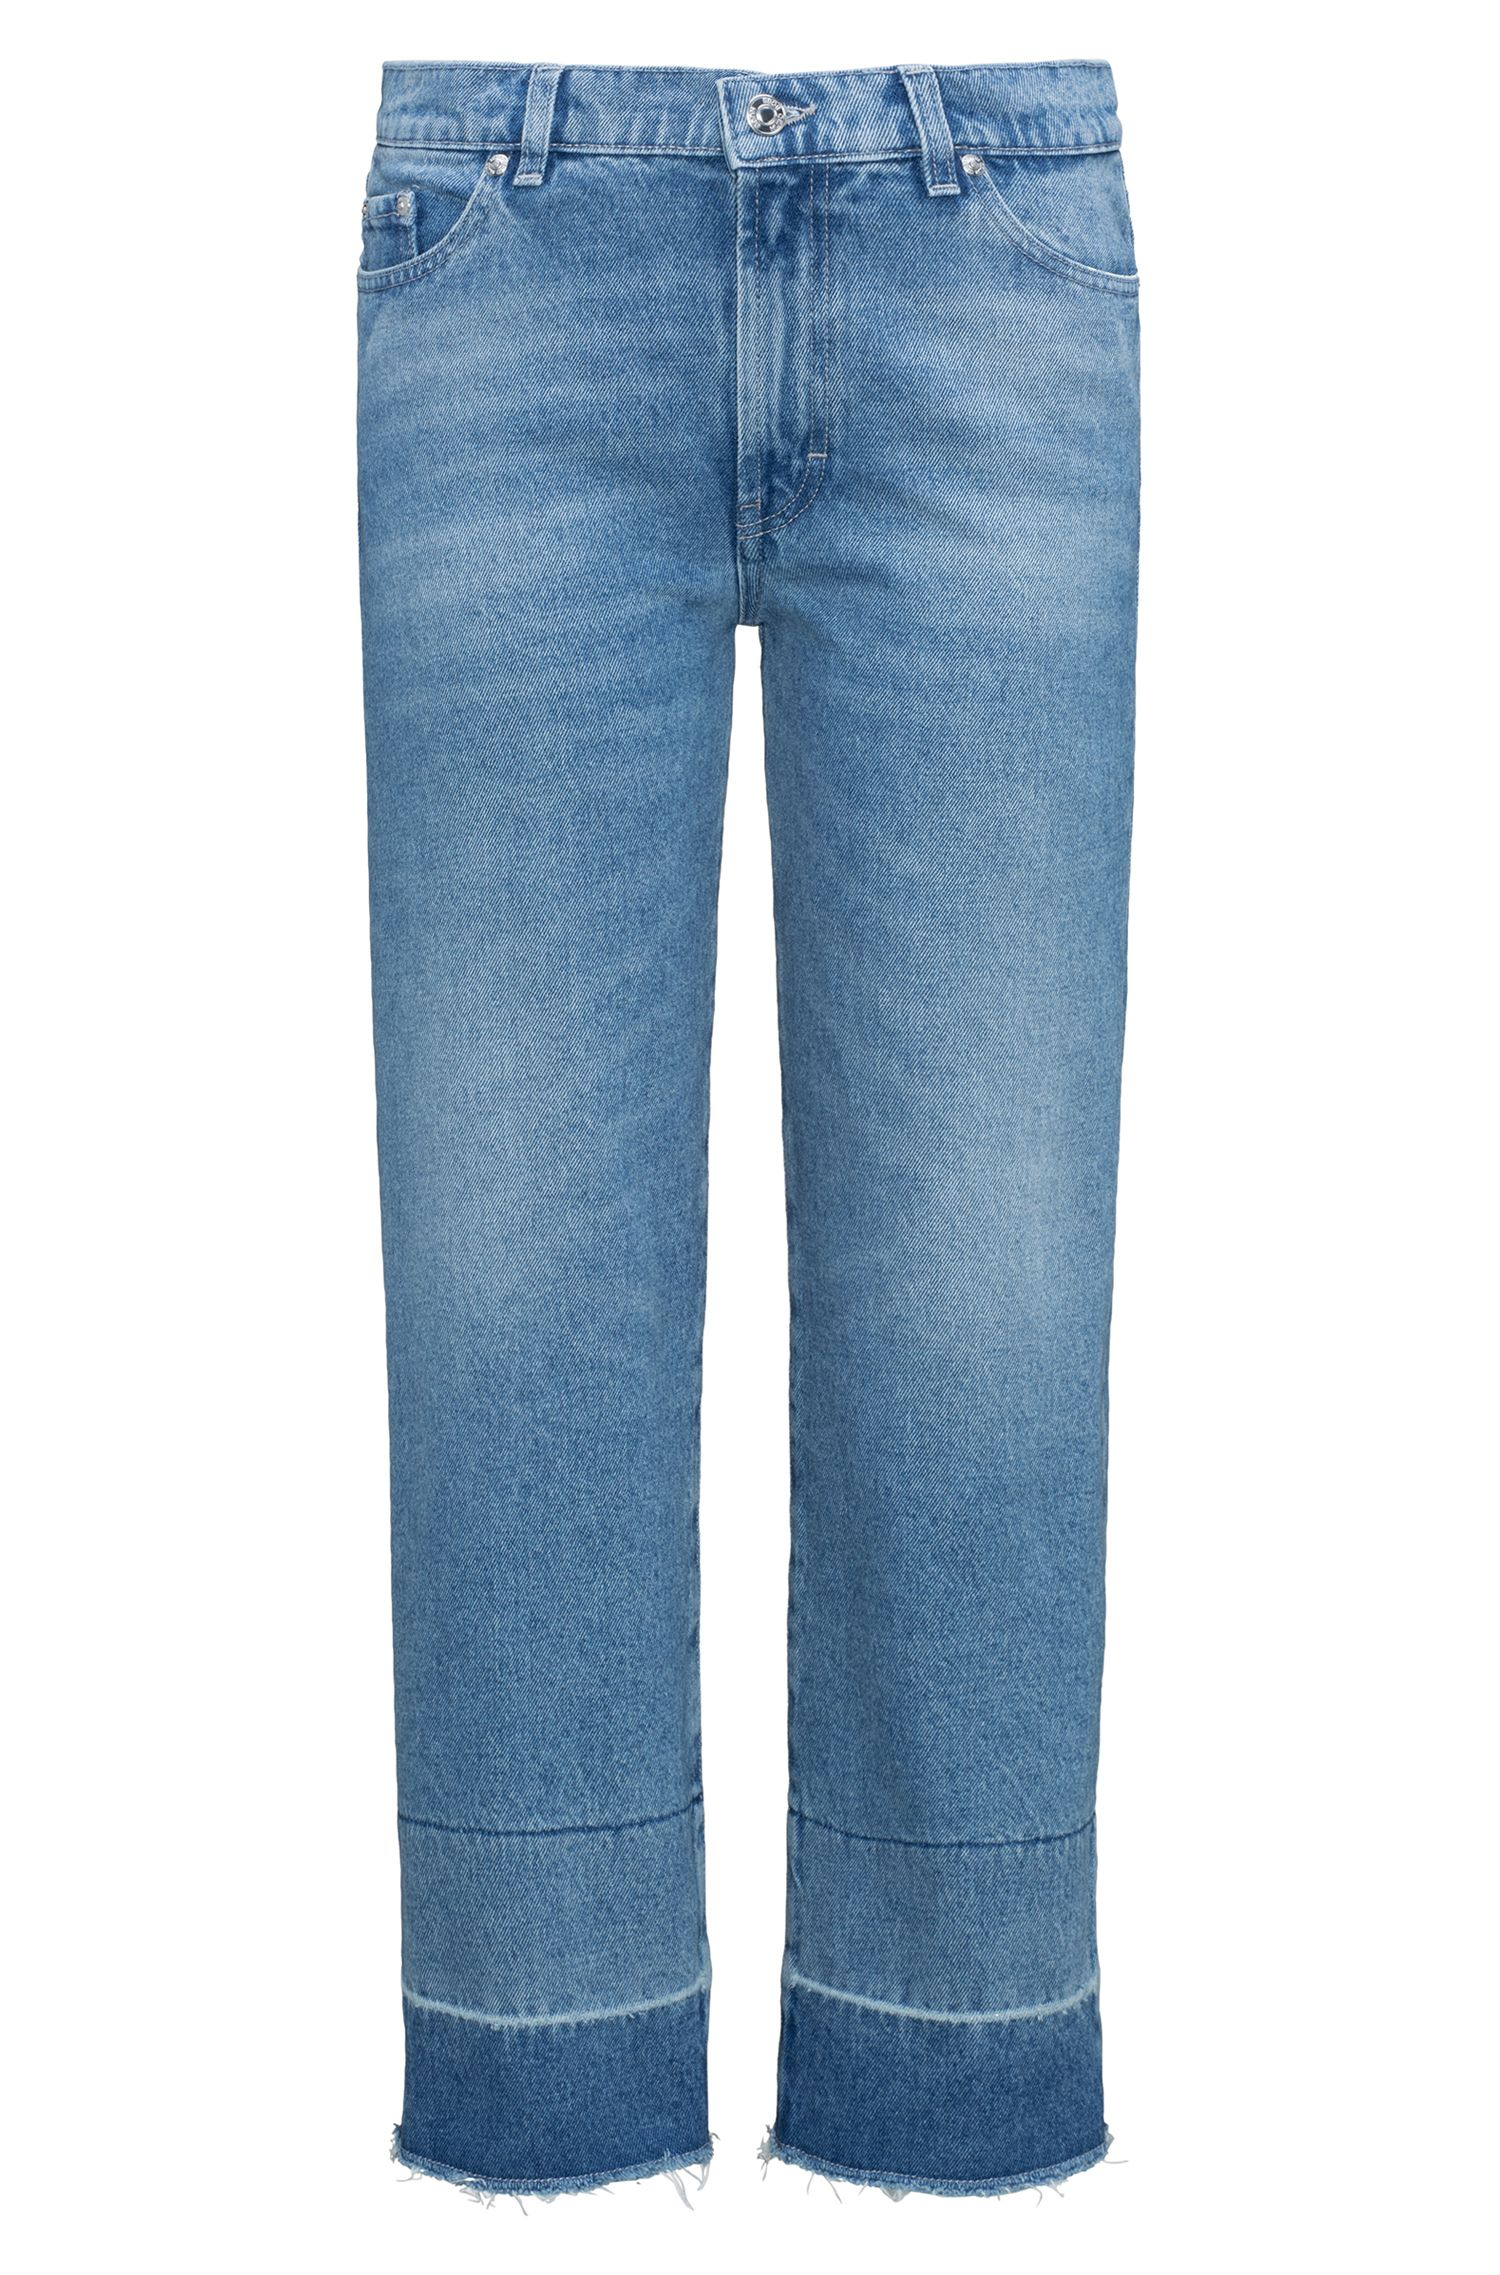 Slim-fit cropped jeans in stonewashed denim